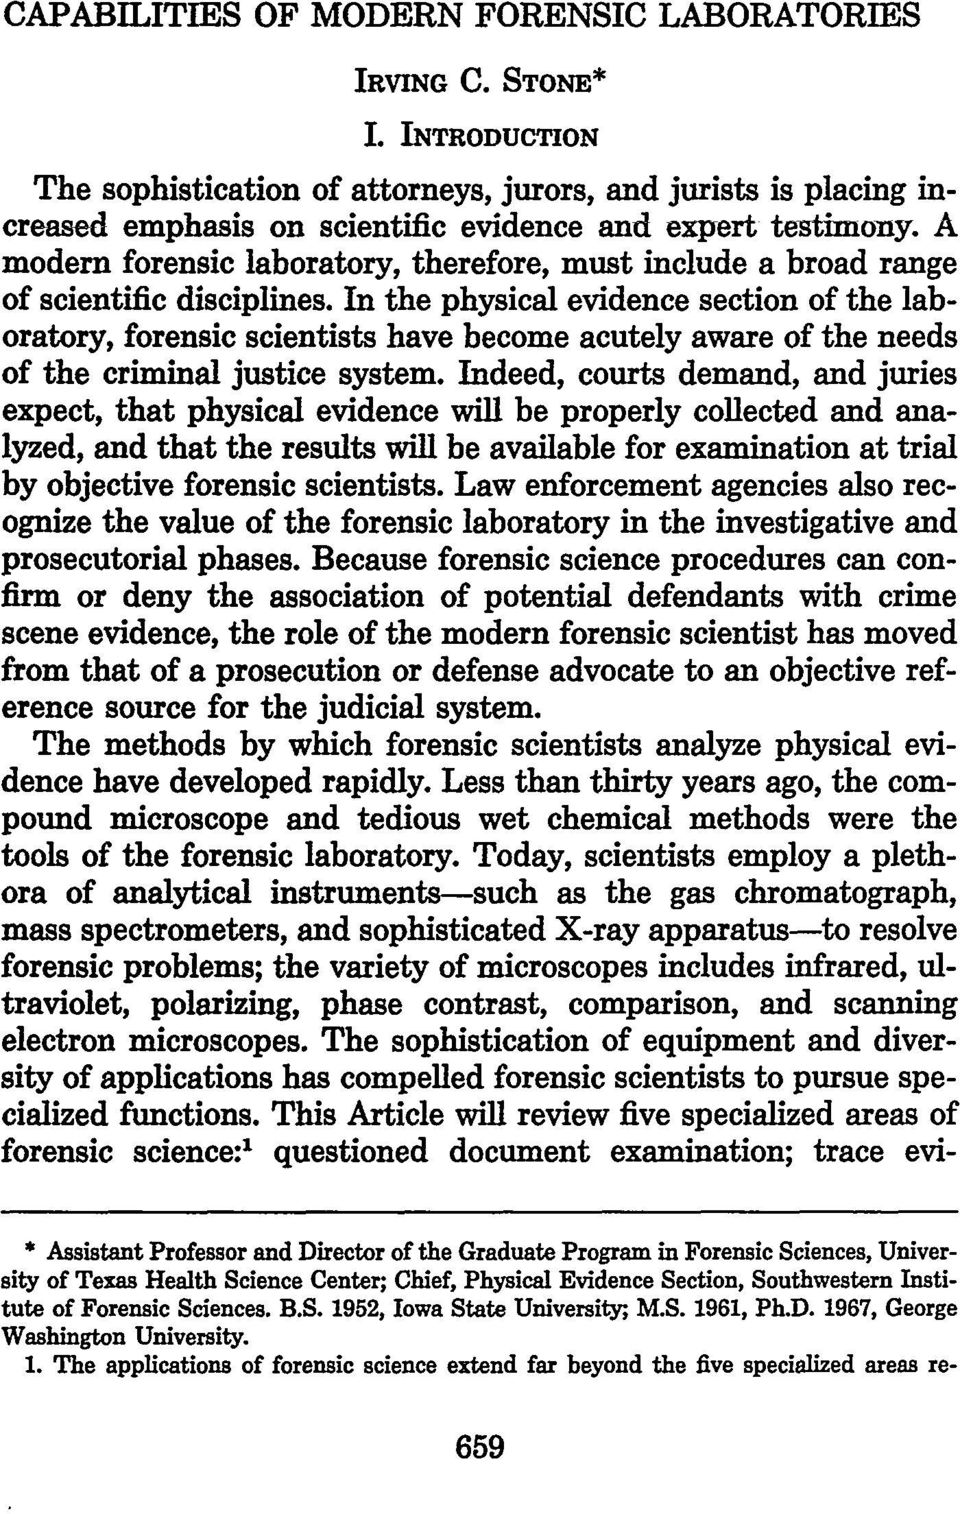 A modem forensic laboratory, therefore, must include a broad range of scientific disciplines.